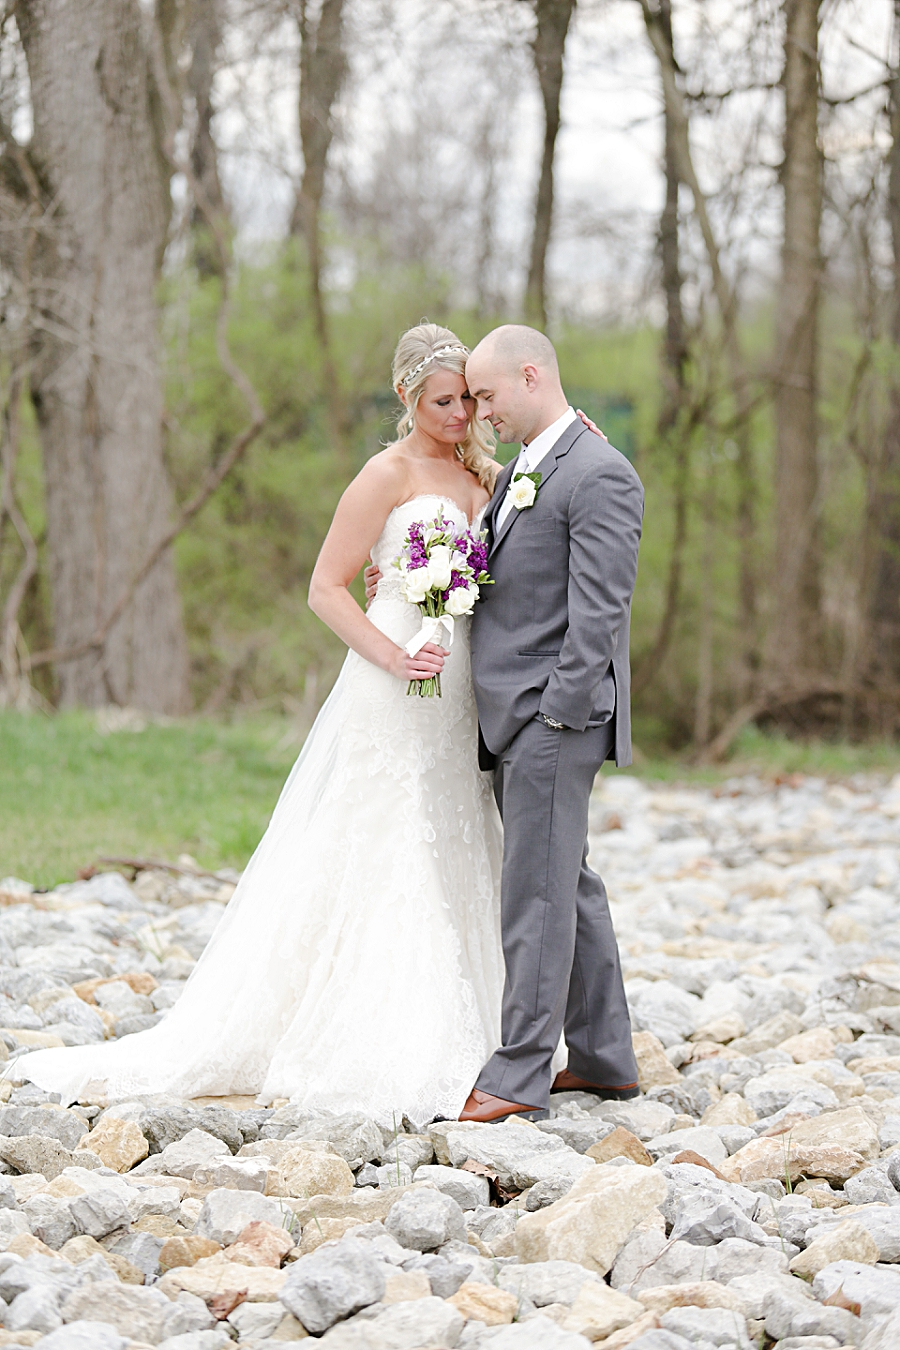 Cincinnati Wedding Photographer_We Are A Story_Kristen & Corey_2672.jpg